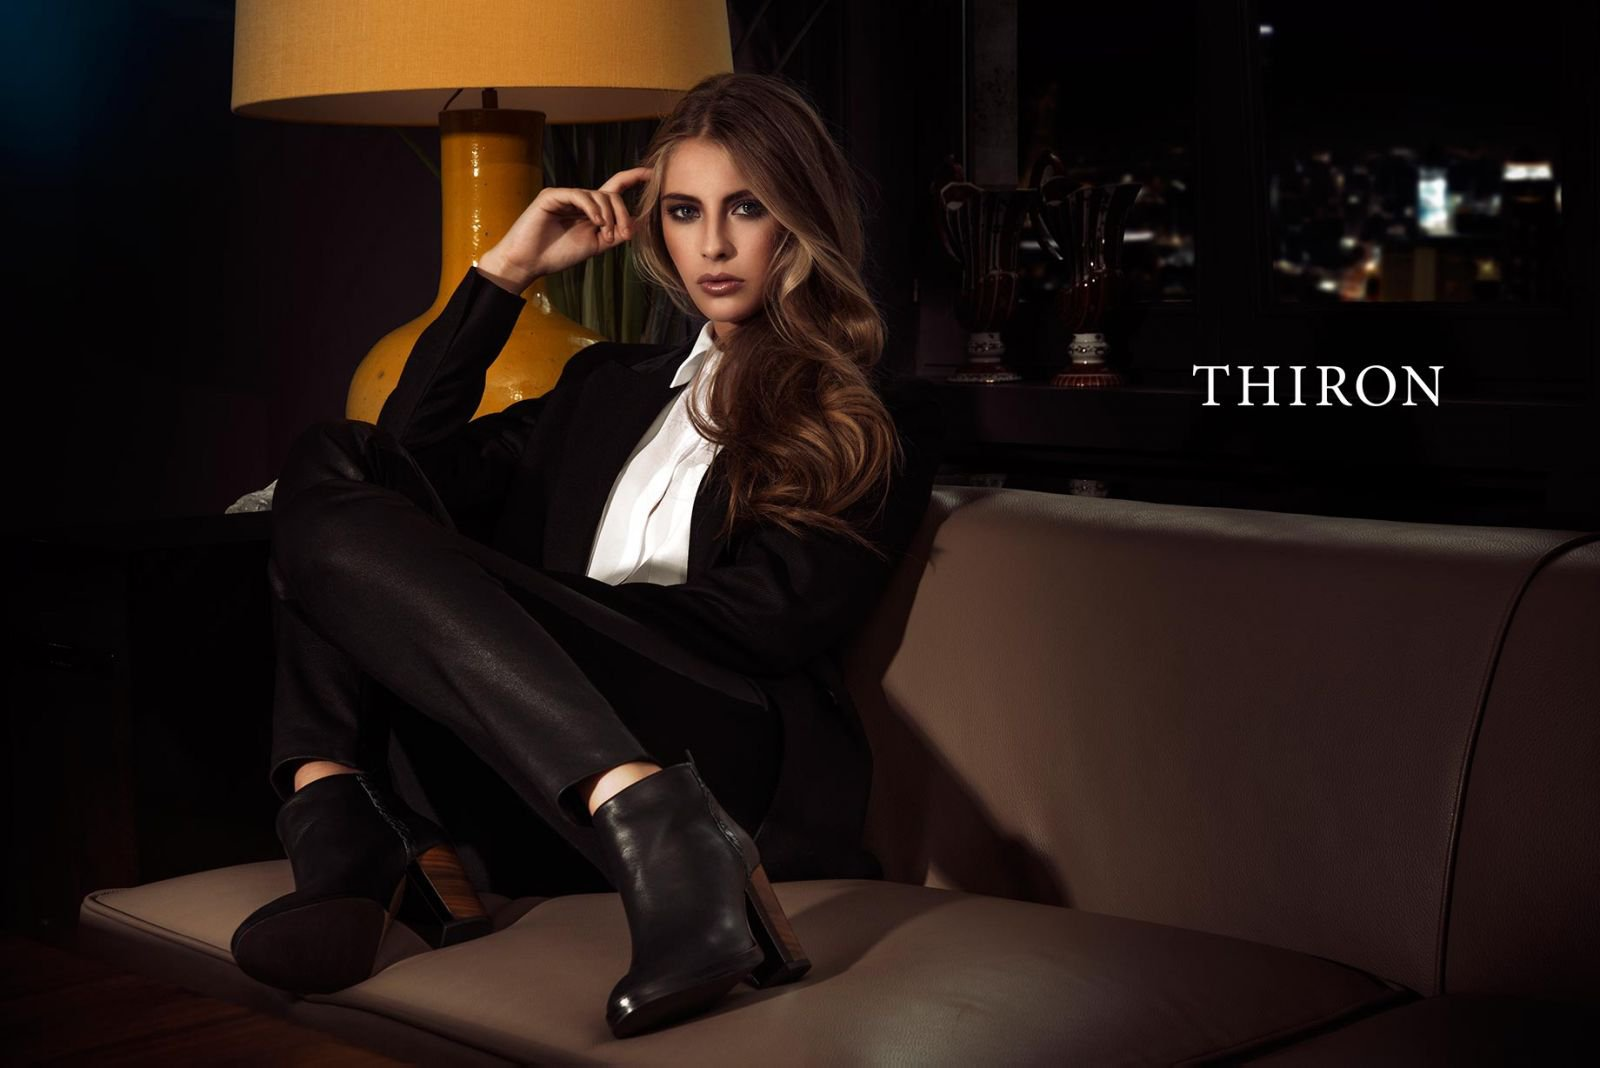 Fall Winter 2014 (Collections The Brand) THIRON